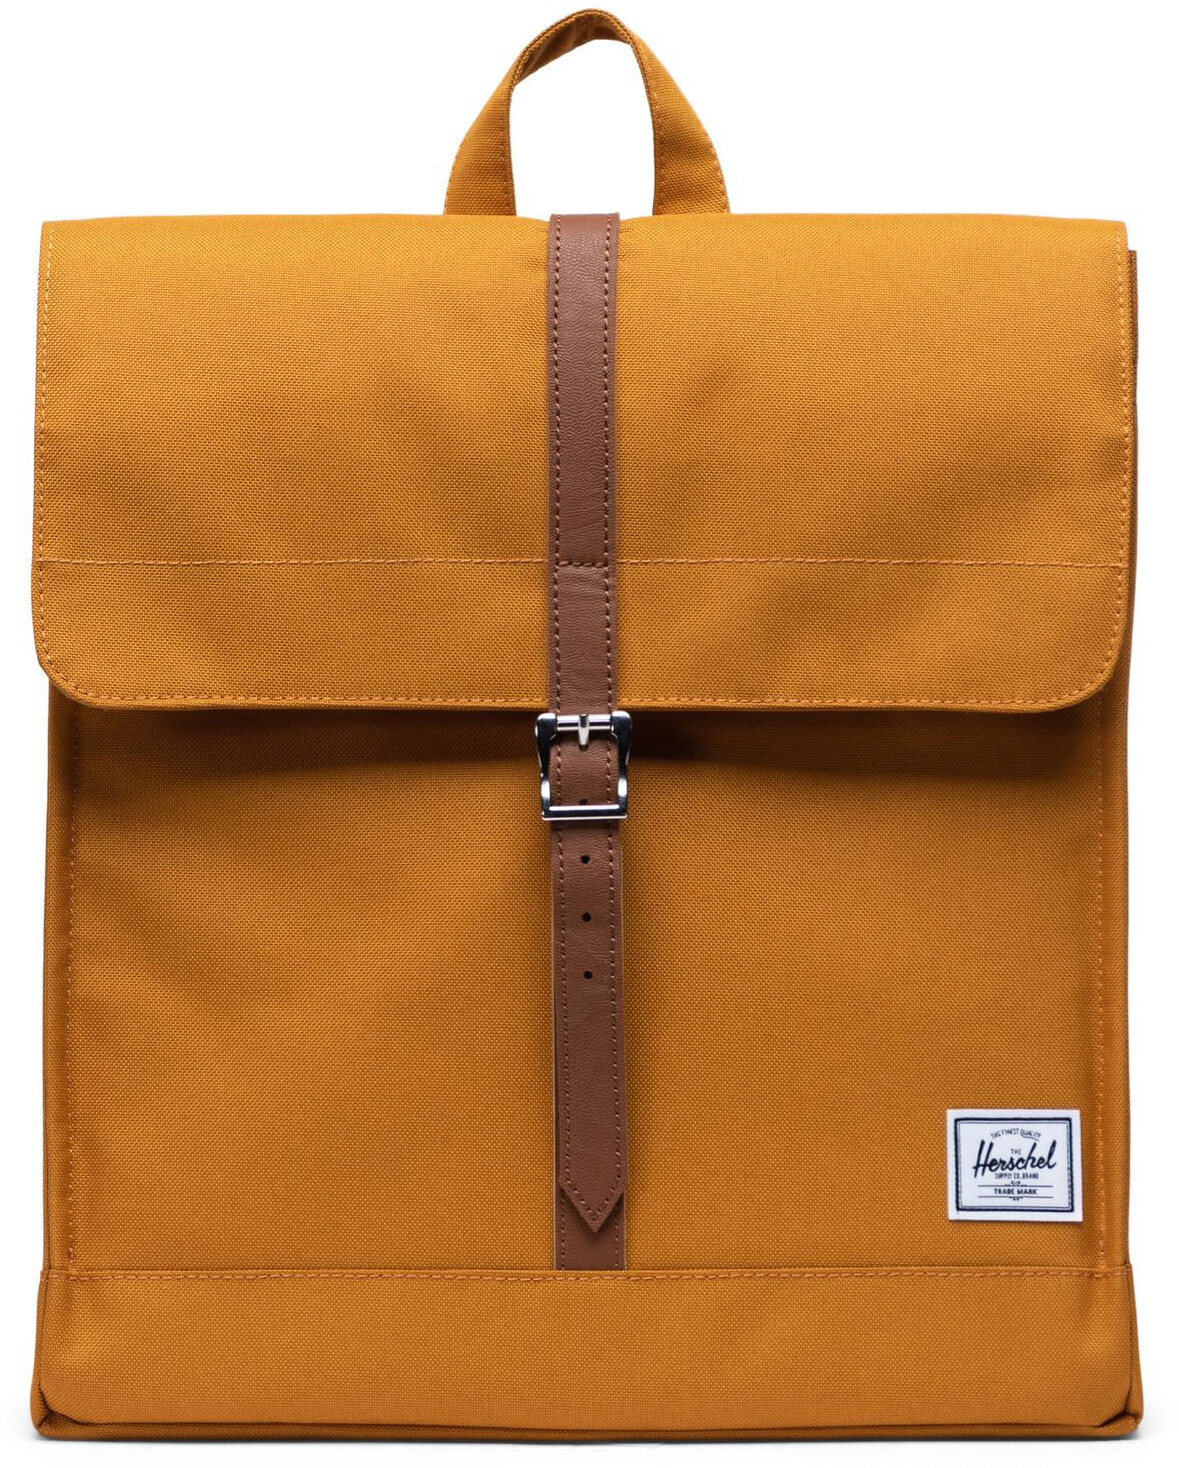 Herschel City Mid-Volume Rygsæk 14l, buckthorn brown (2019) | Travel bags